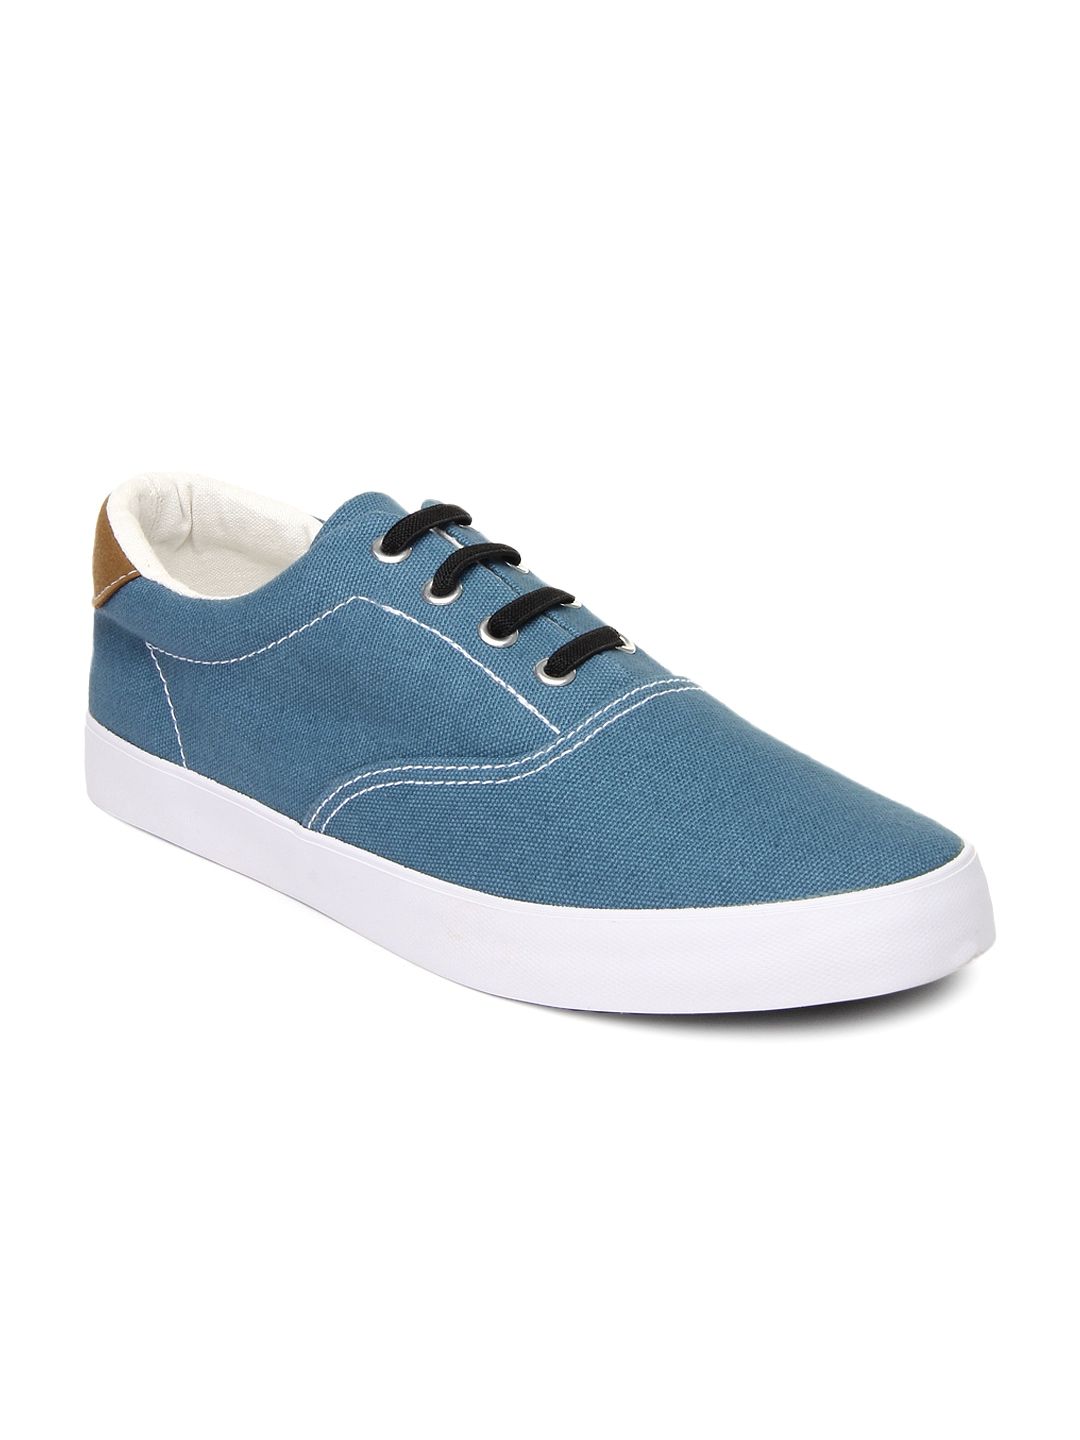 myntra roadster blue casual shoes 657959 buy myntra